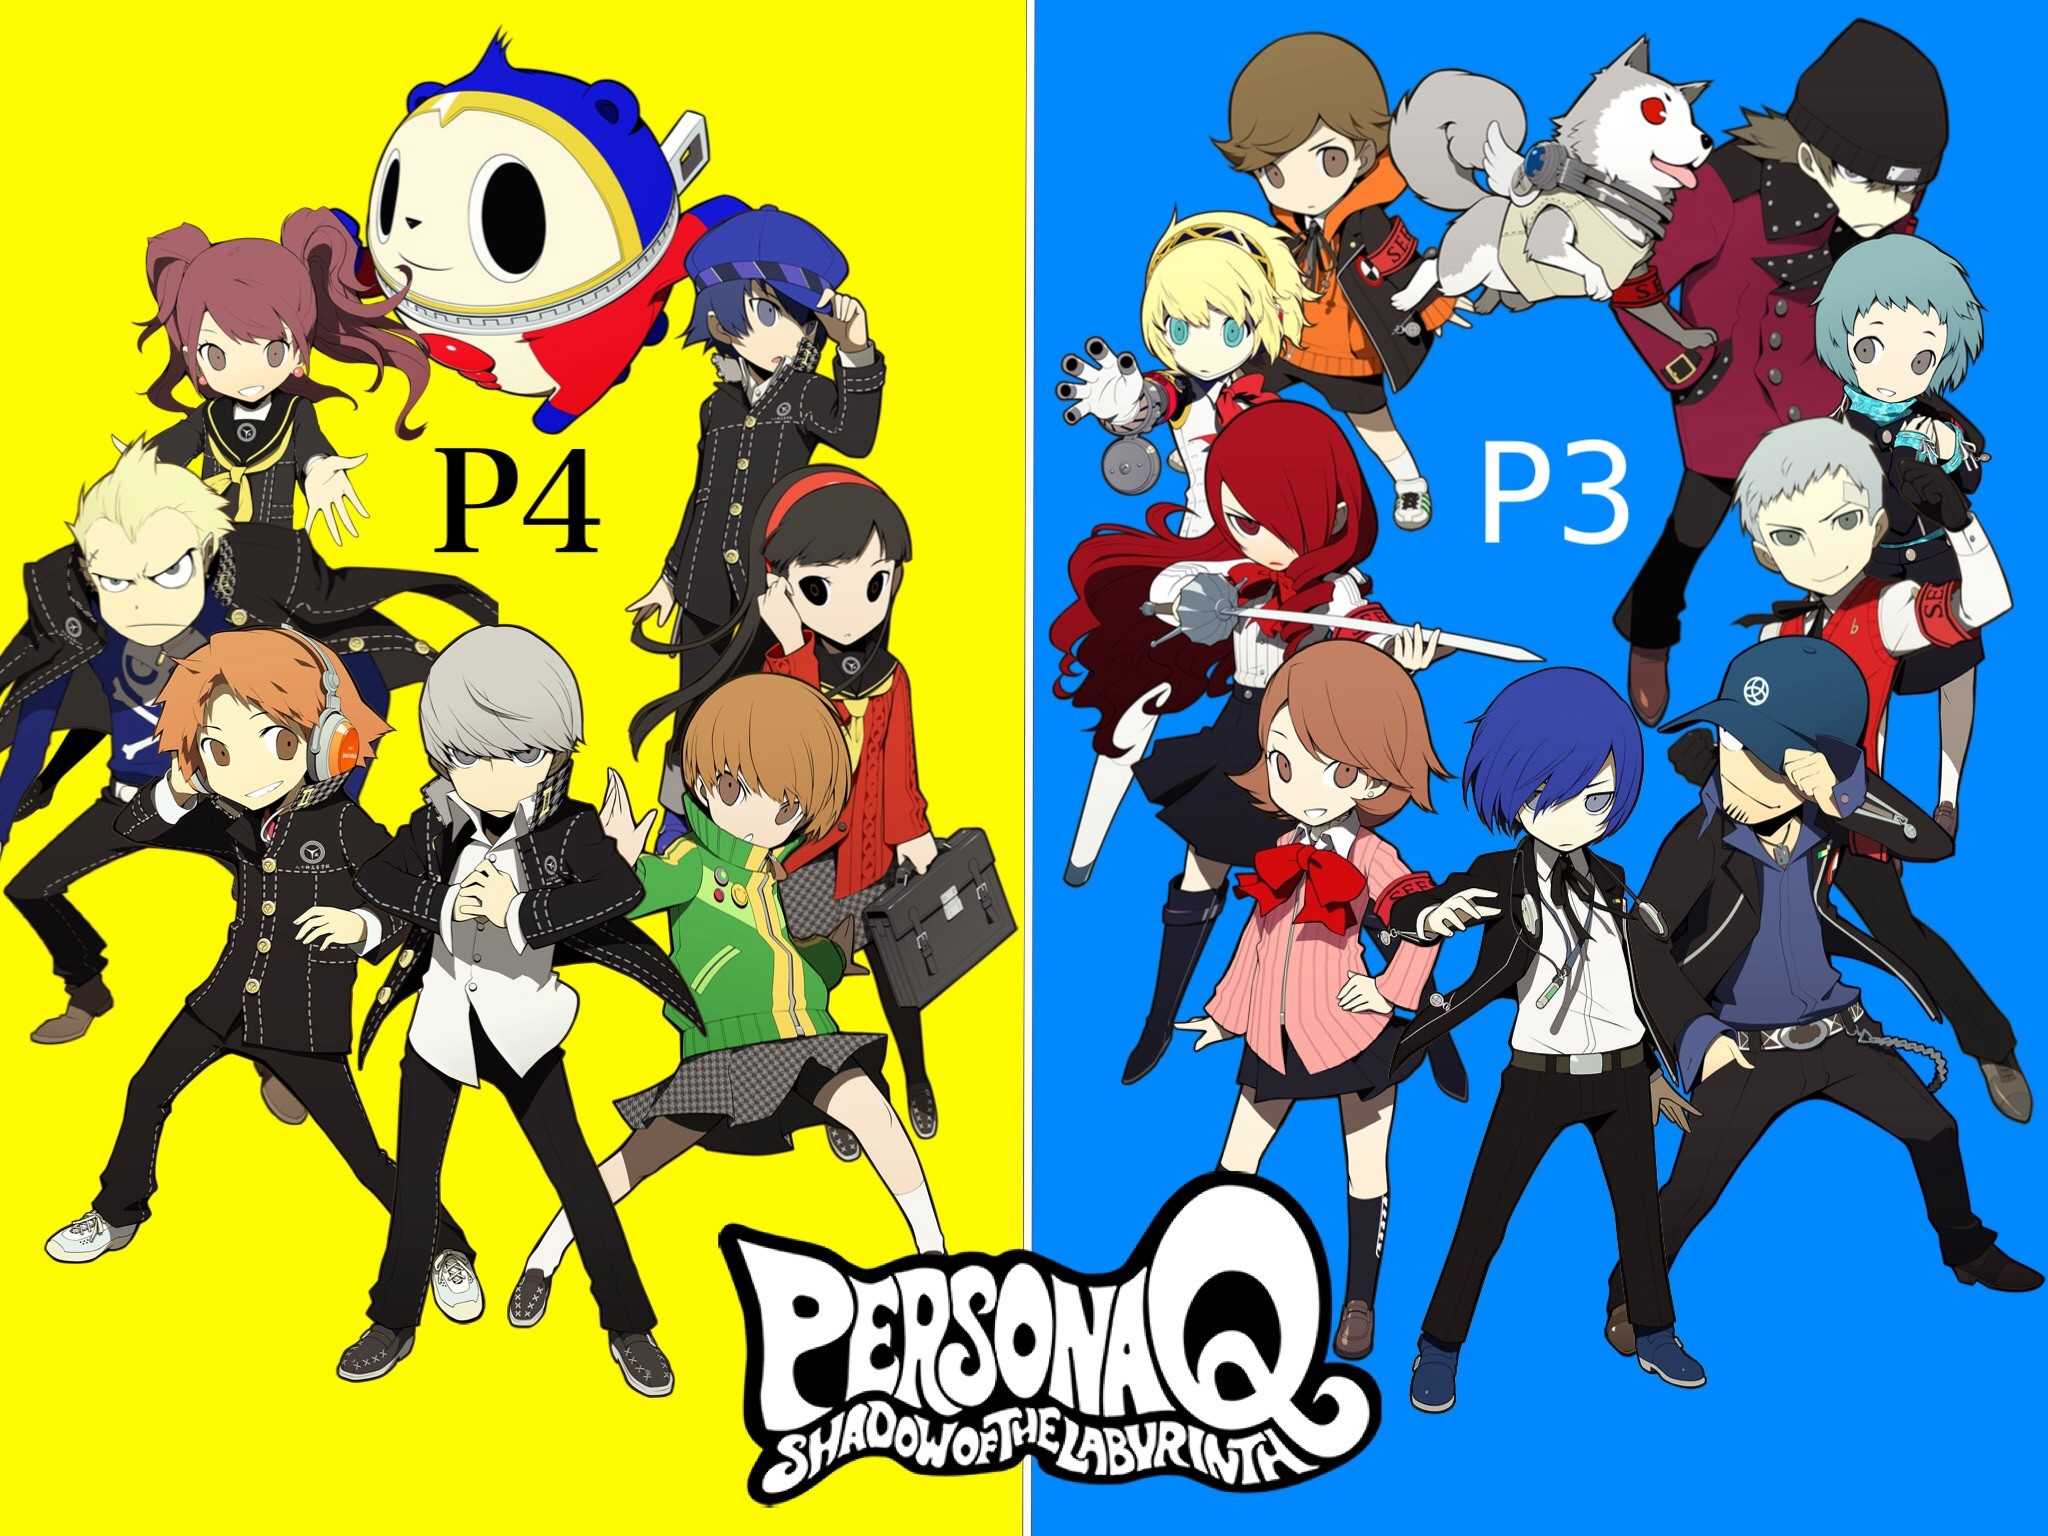 Persona Q Wallpaper by AxlStyler Persona Q Wallpaper by AxlStyler